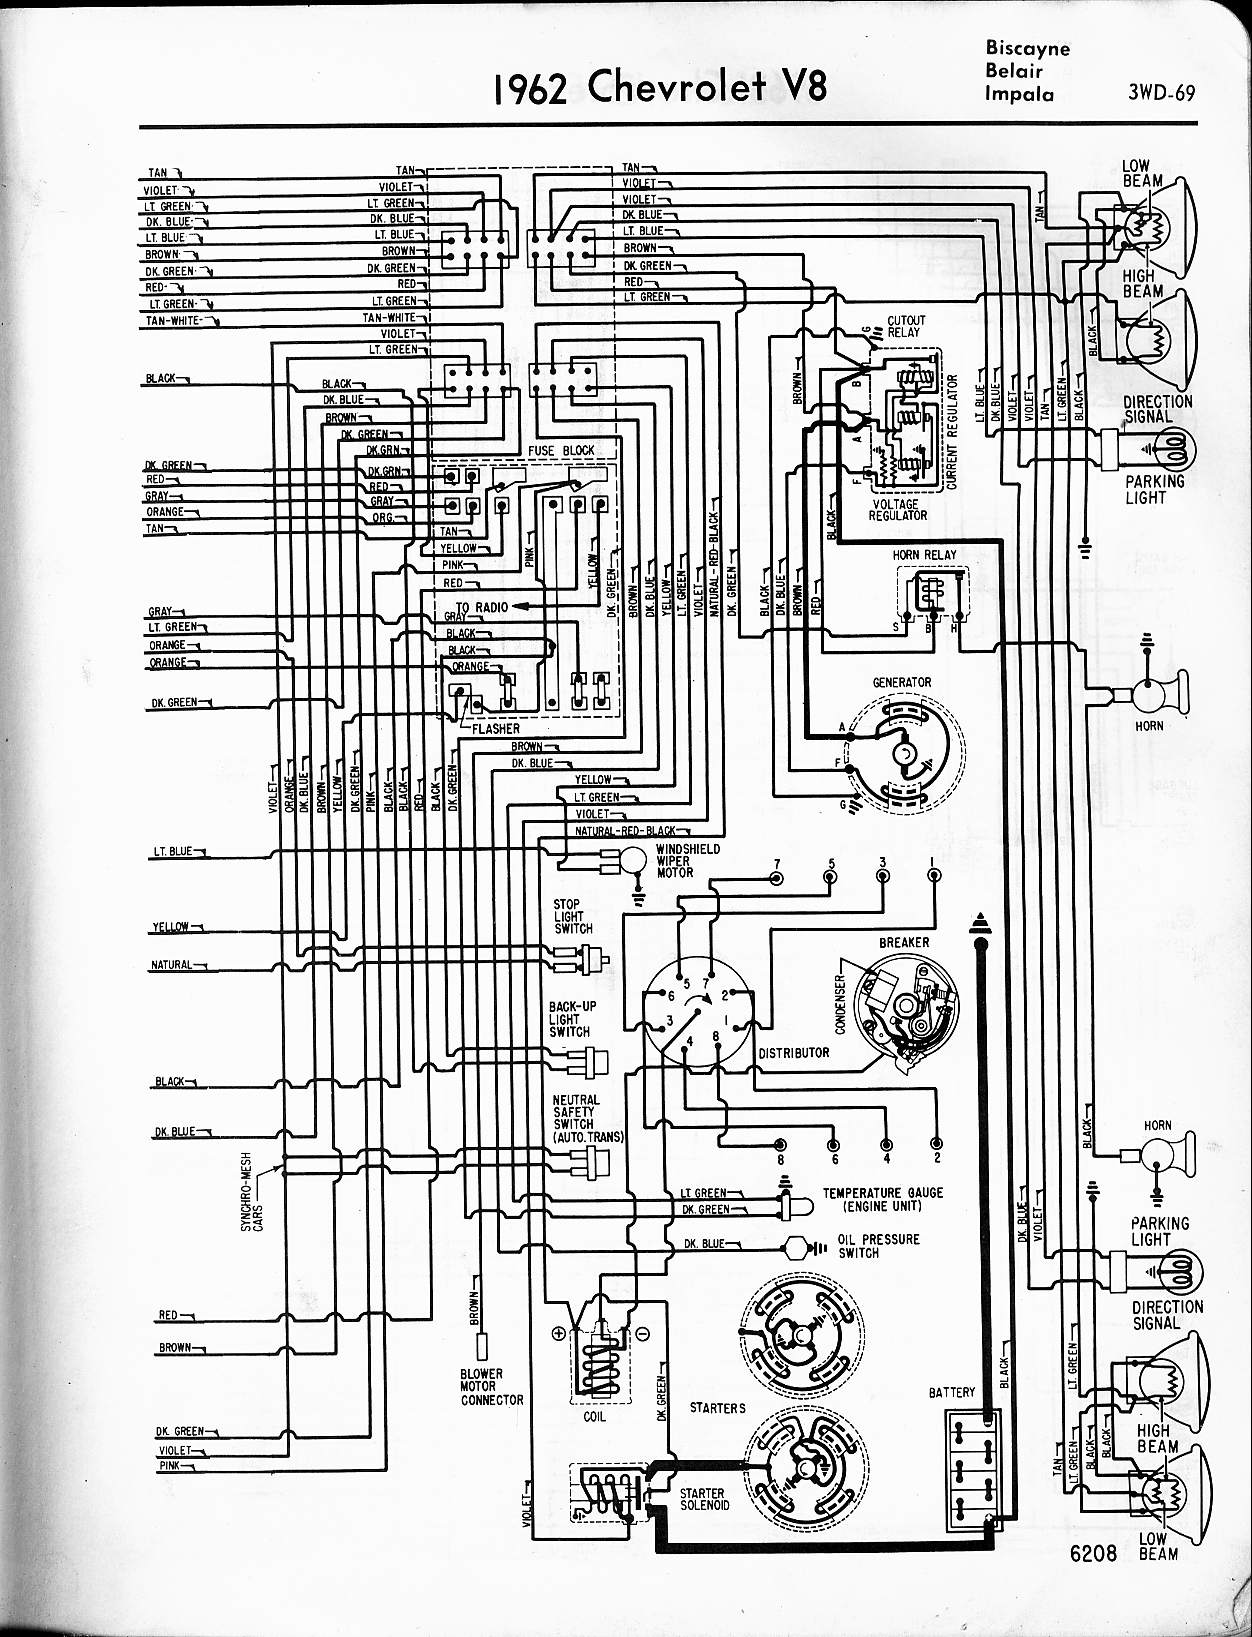 57 65 chevy wiring diagrams rh oldcarmanualproject com 2003 Chevy Impala Wiring Diagram 67 Impala Wiring Diagram